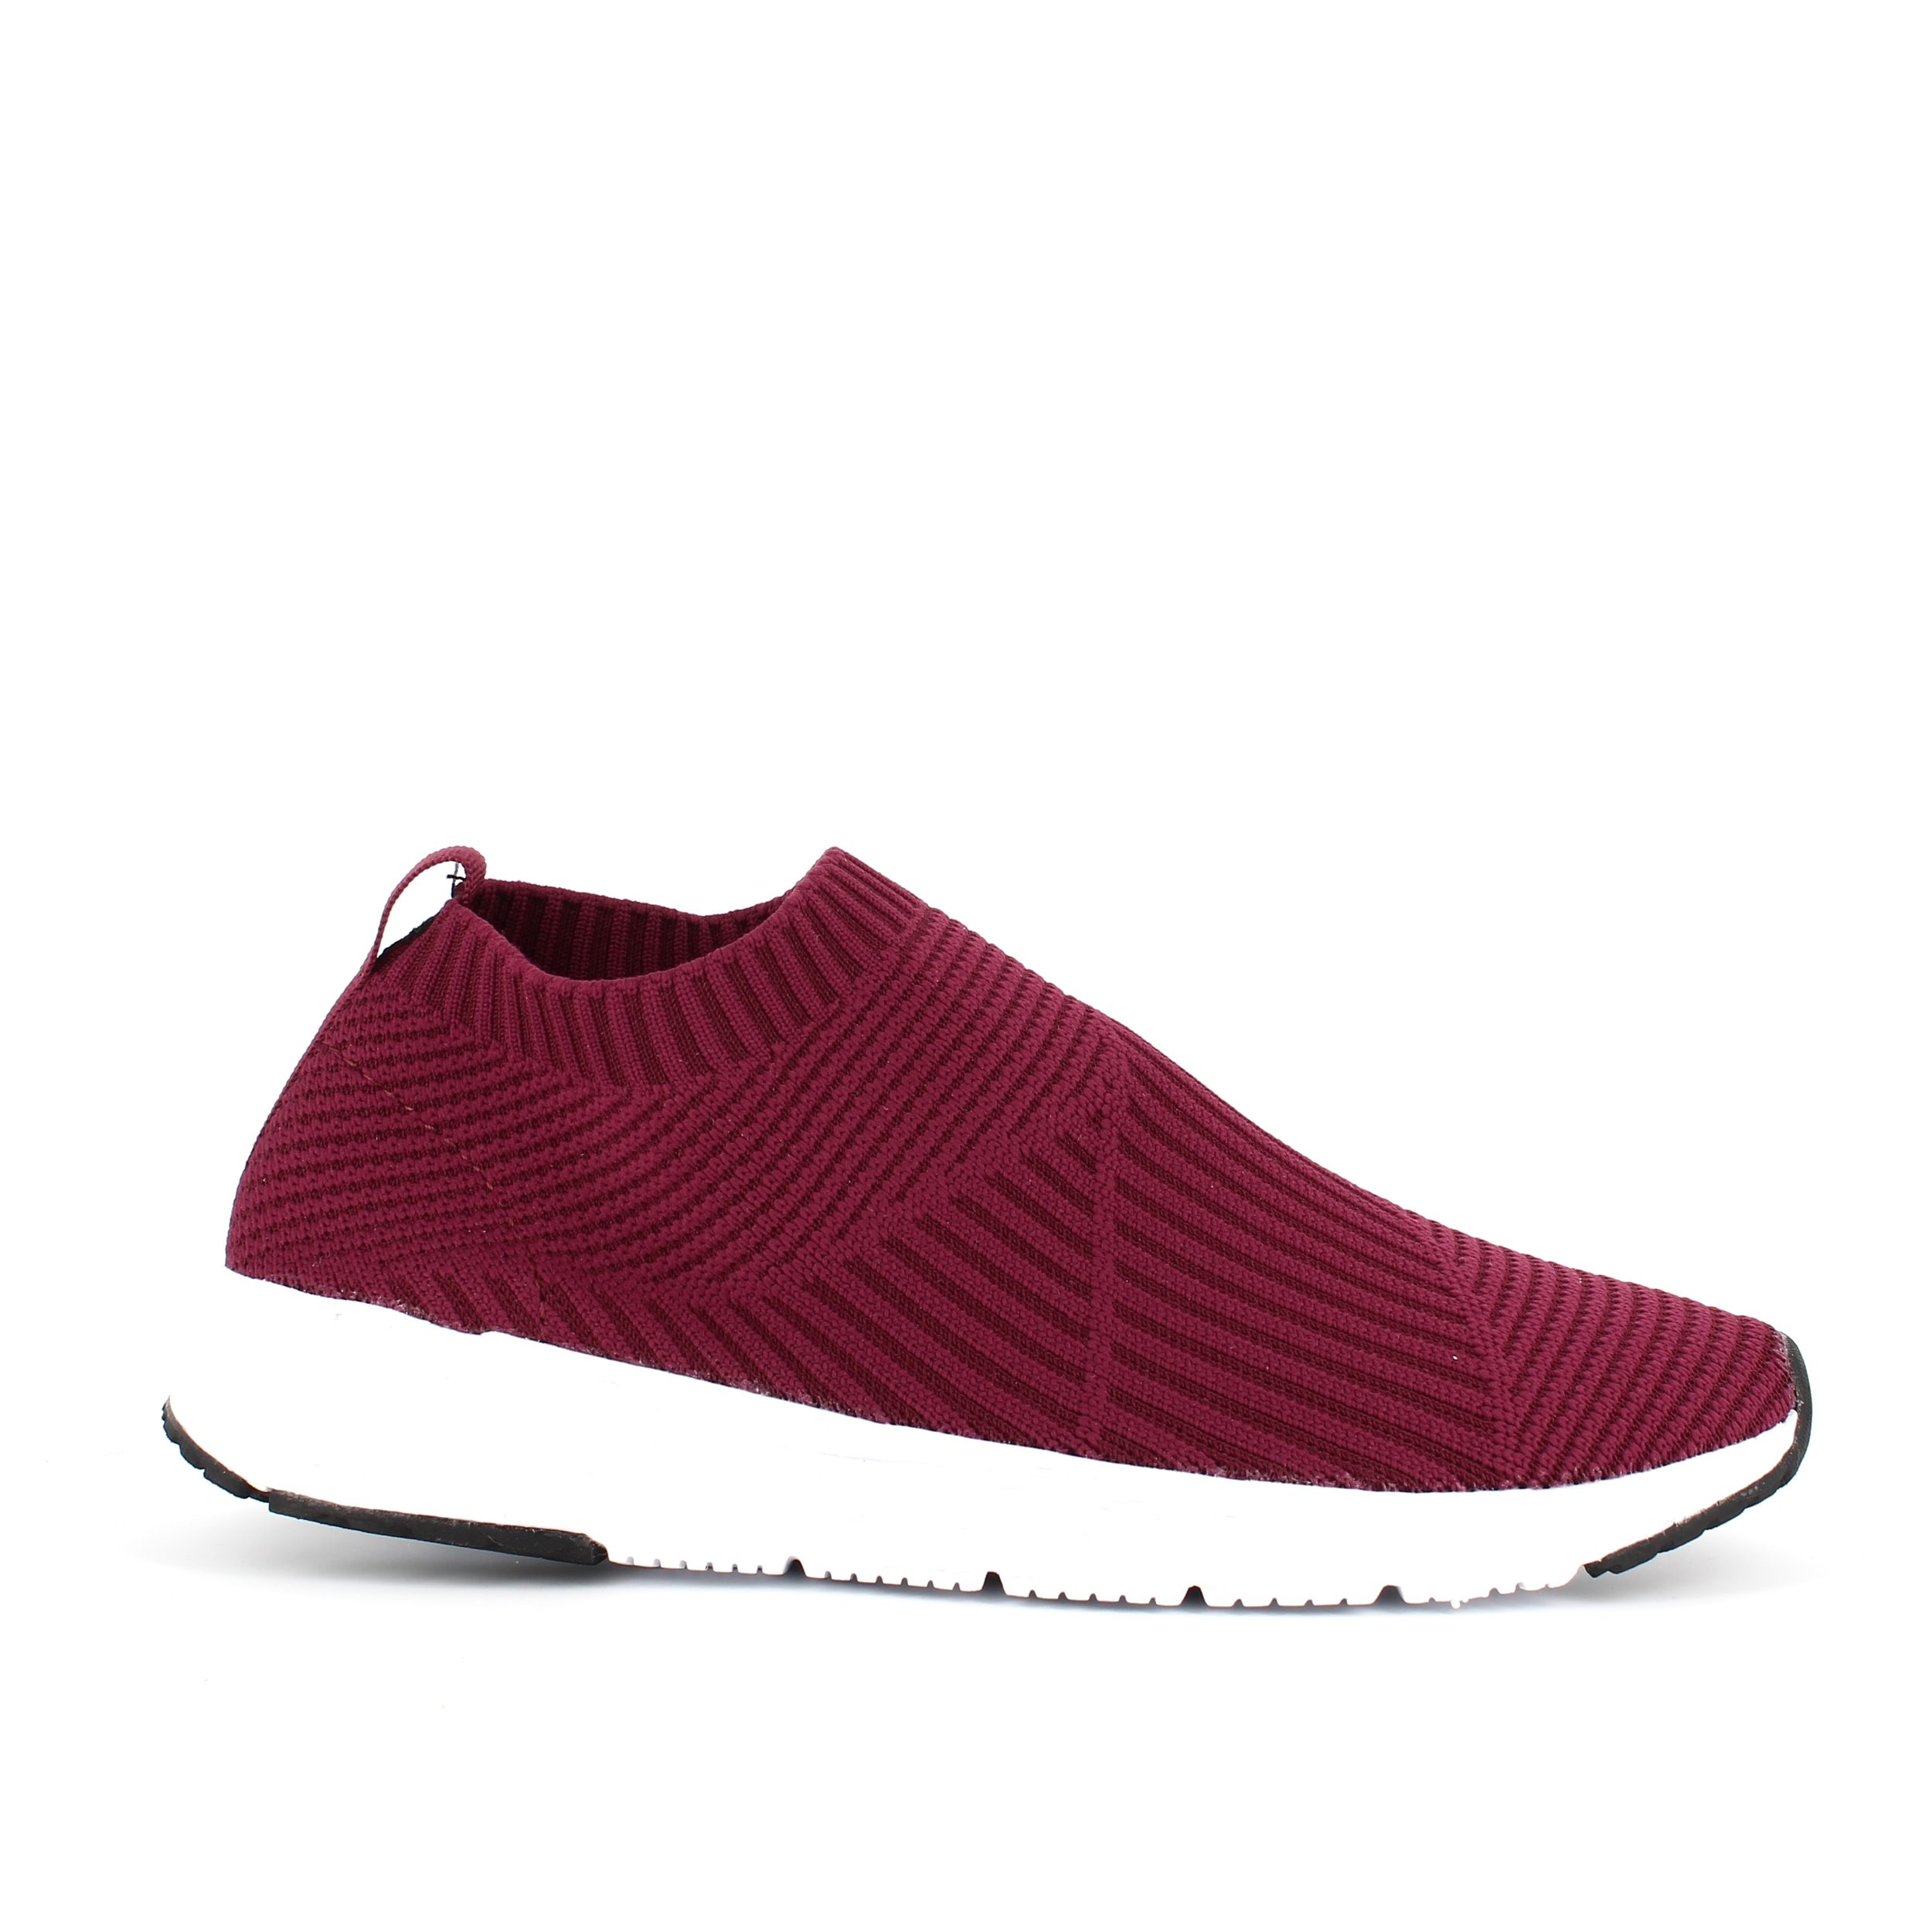 Image of   Bordeaux strikket slip in sneakers - god til smalle fødder - 41